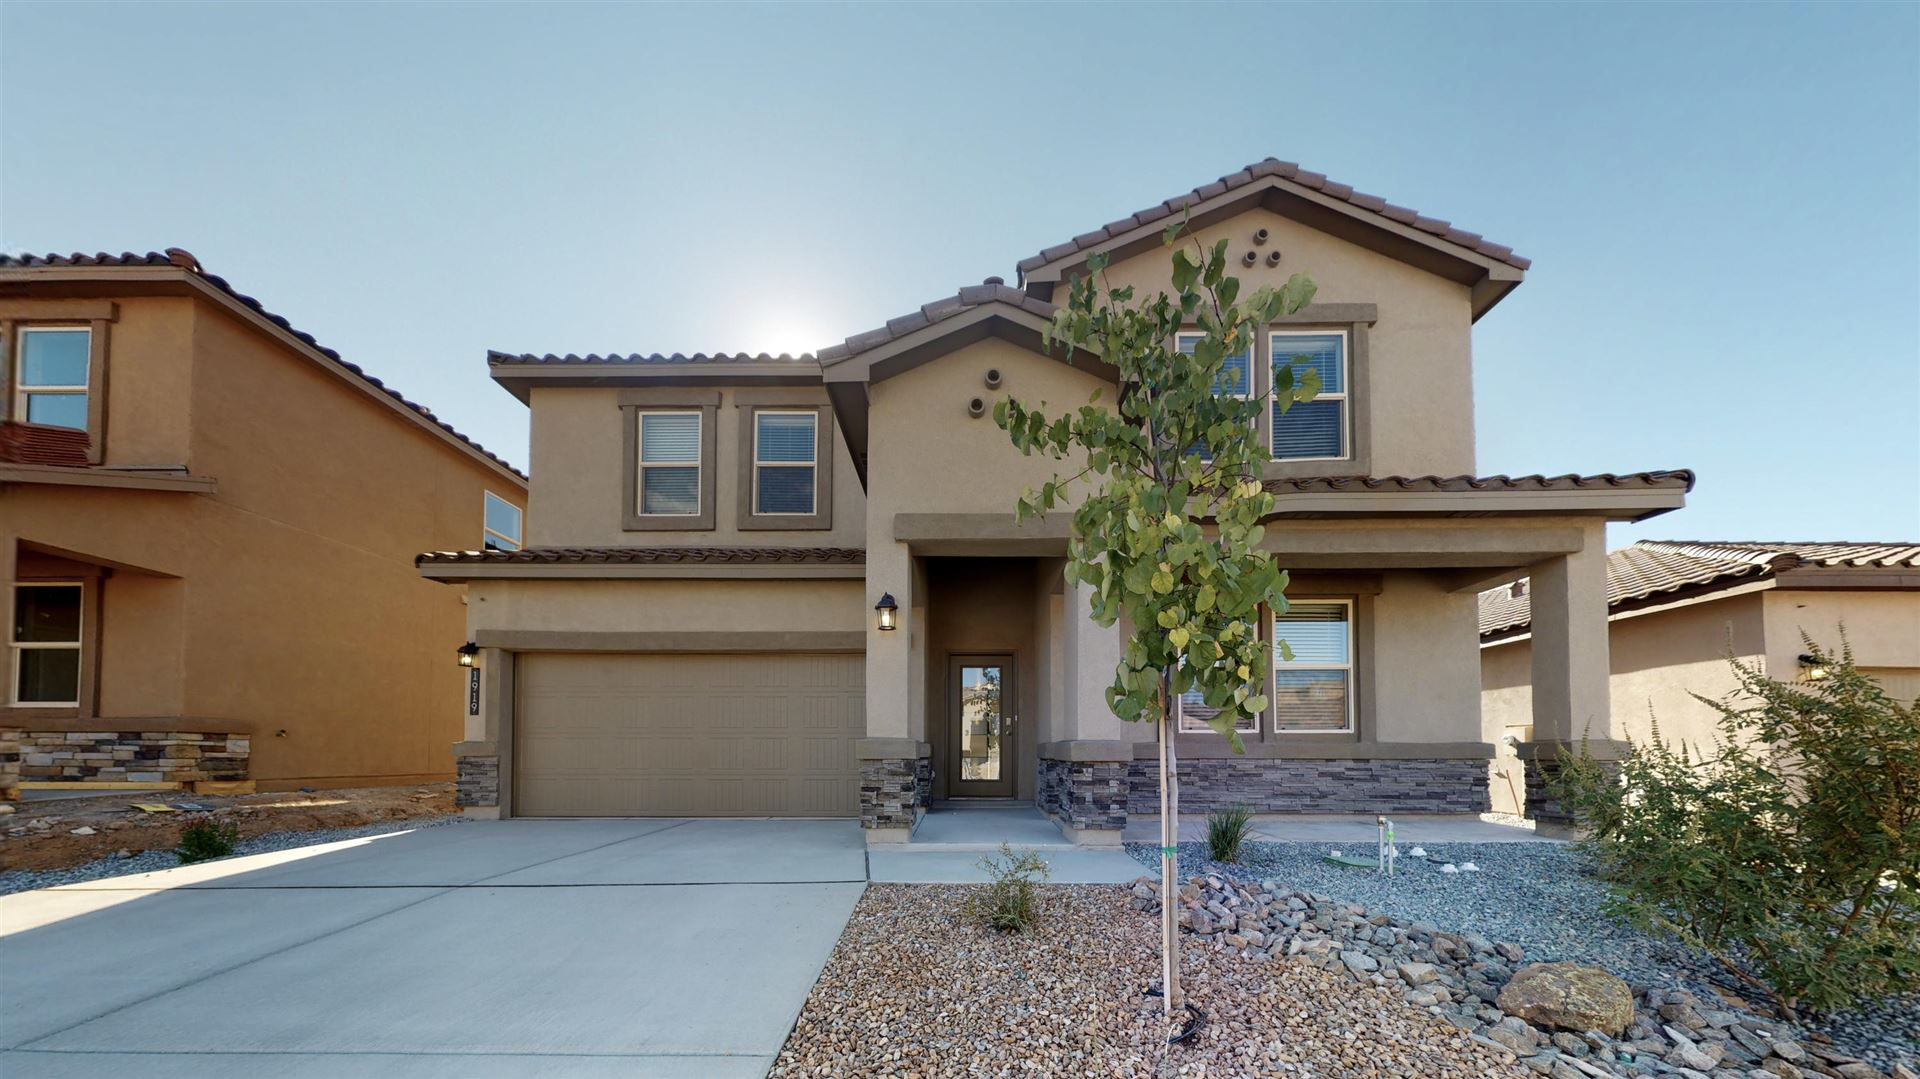 11539 SANDIA SUNSET Avenue SE, Albuquerque, NM 87123 - MLS#: 984556